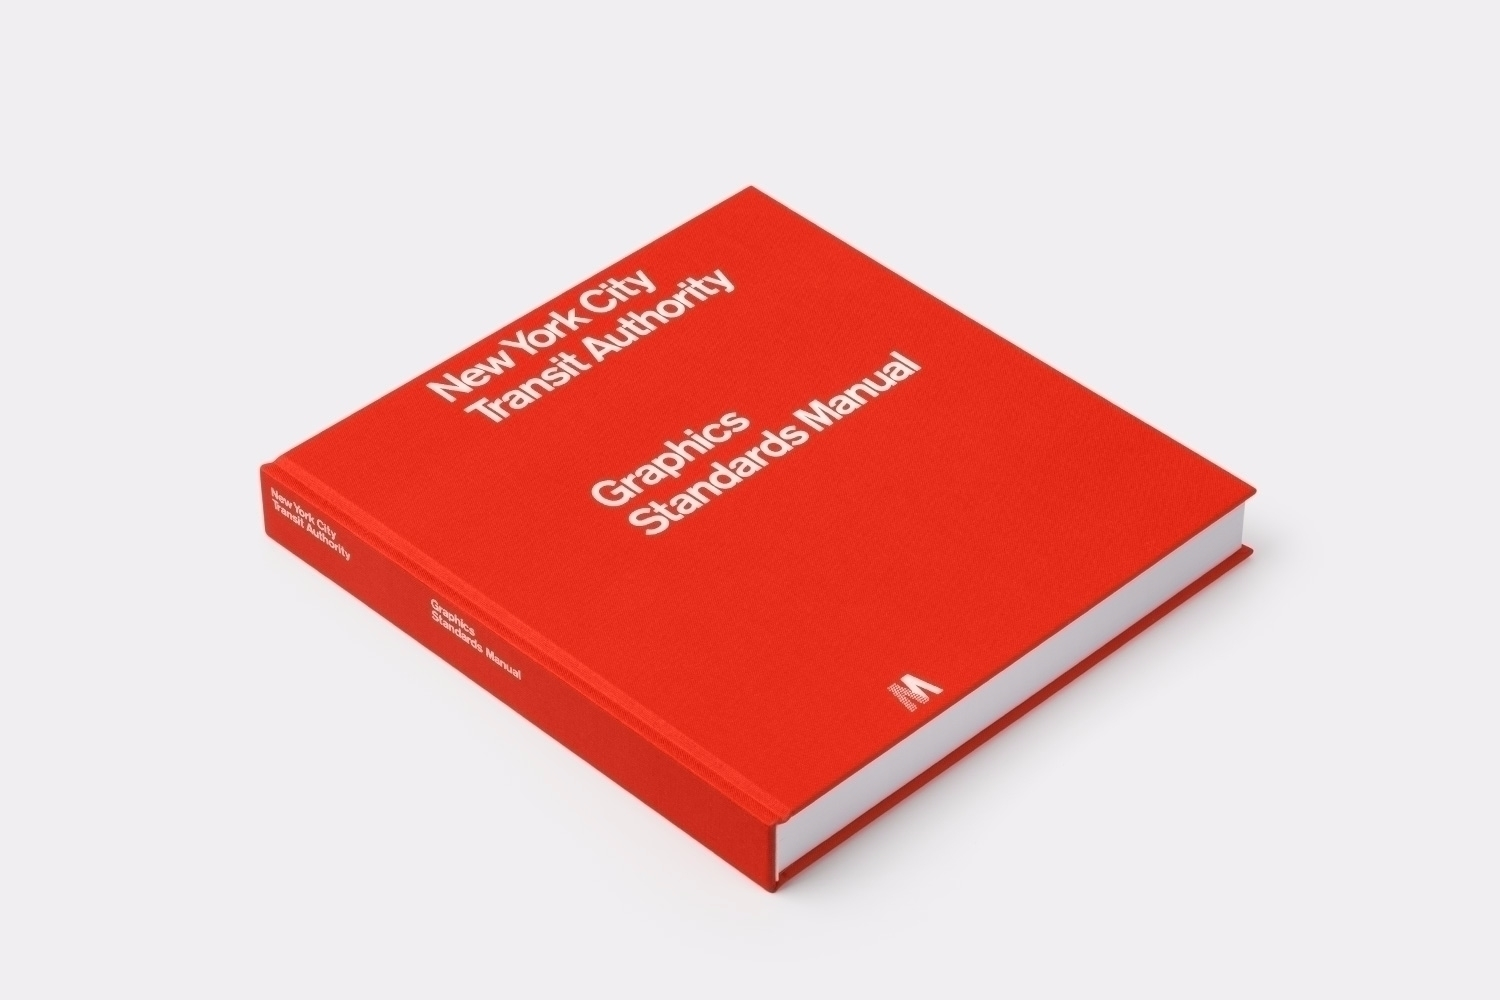 NYCTA Graphics Standards 1970 Y - odetothings | ello